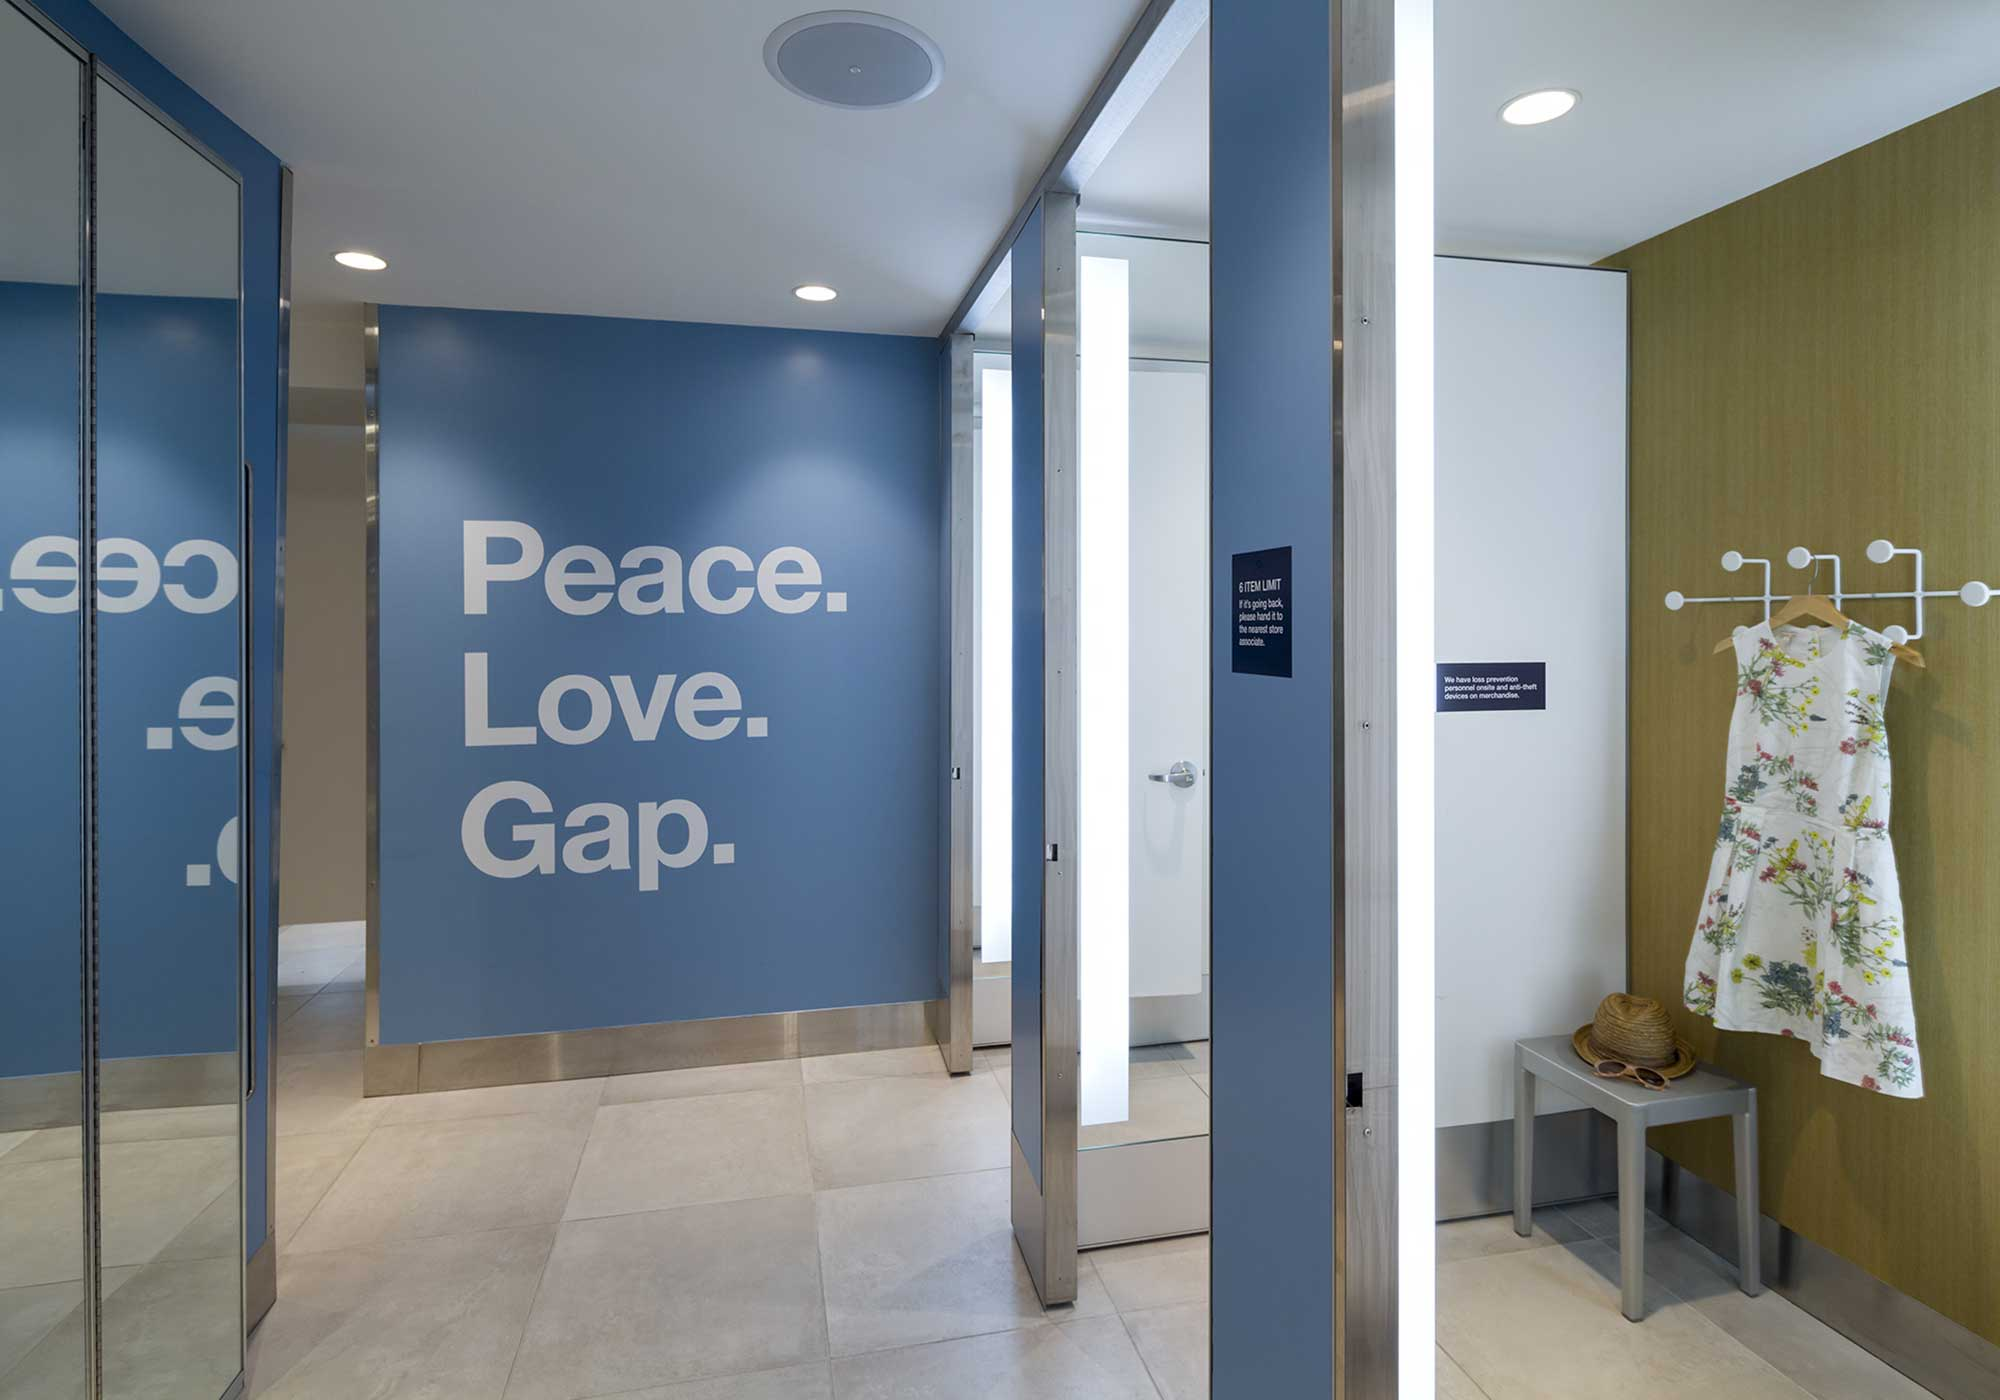 Fitting room area with Peace. Love. Gap. sign